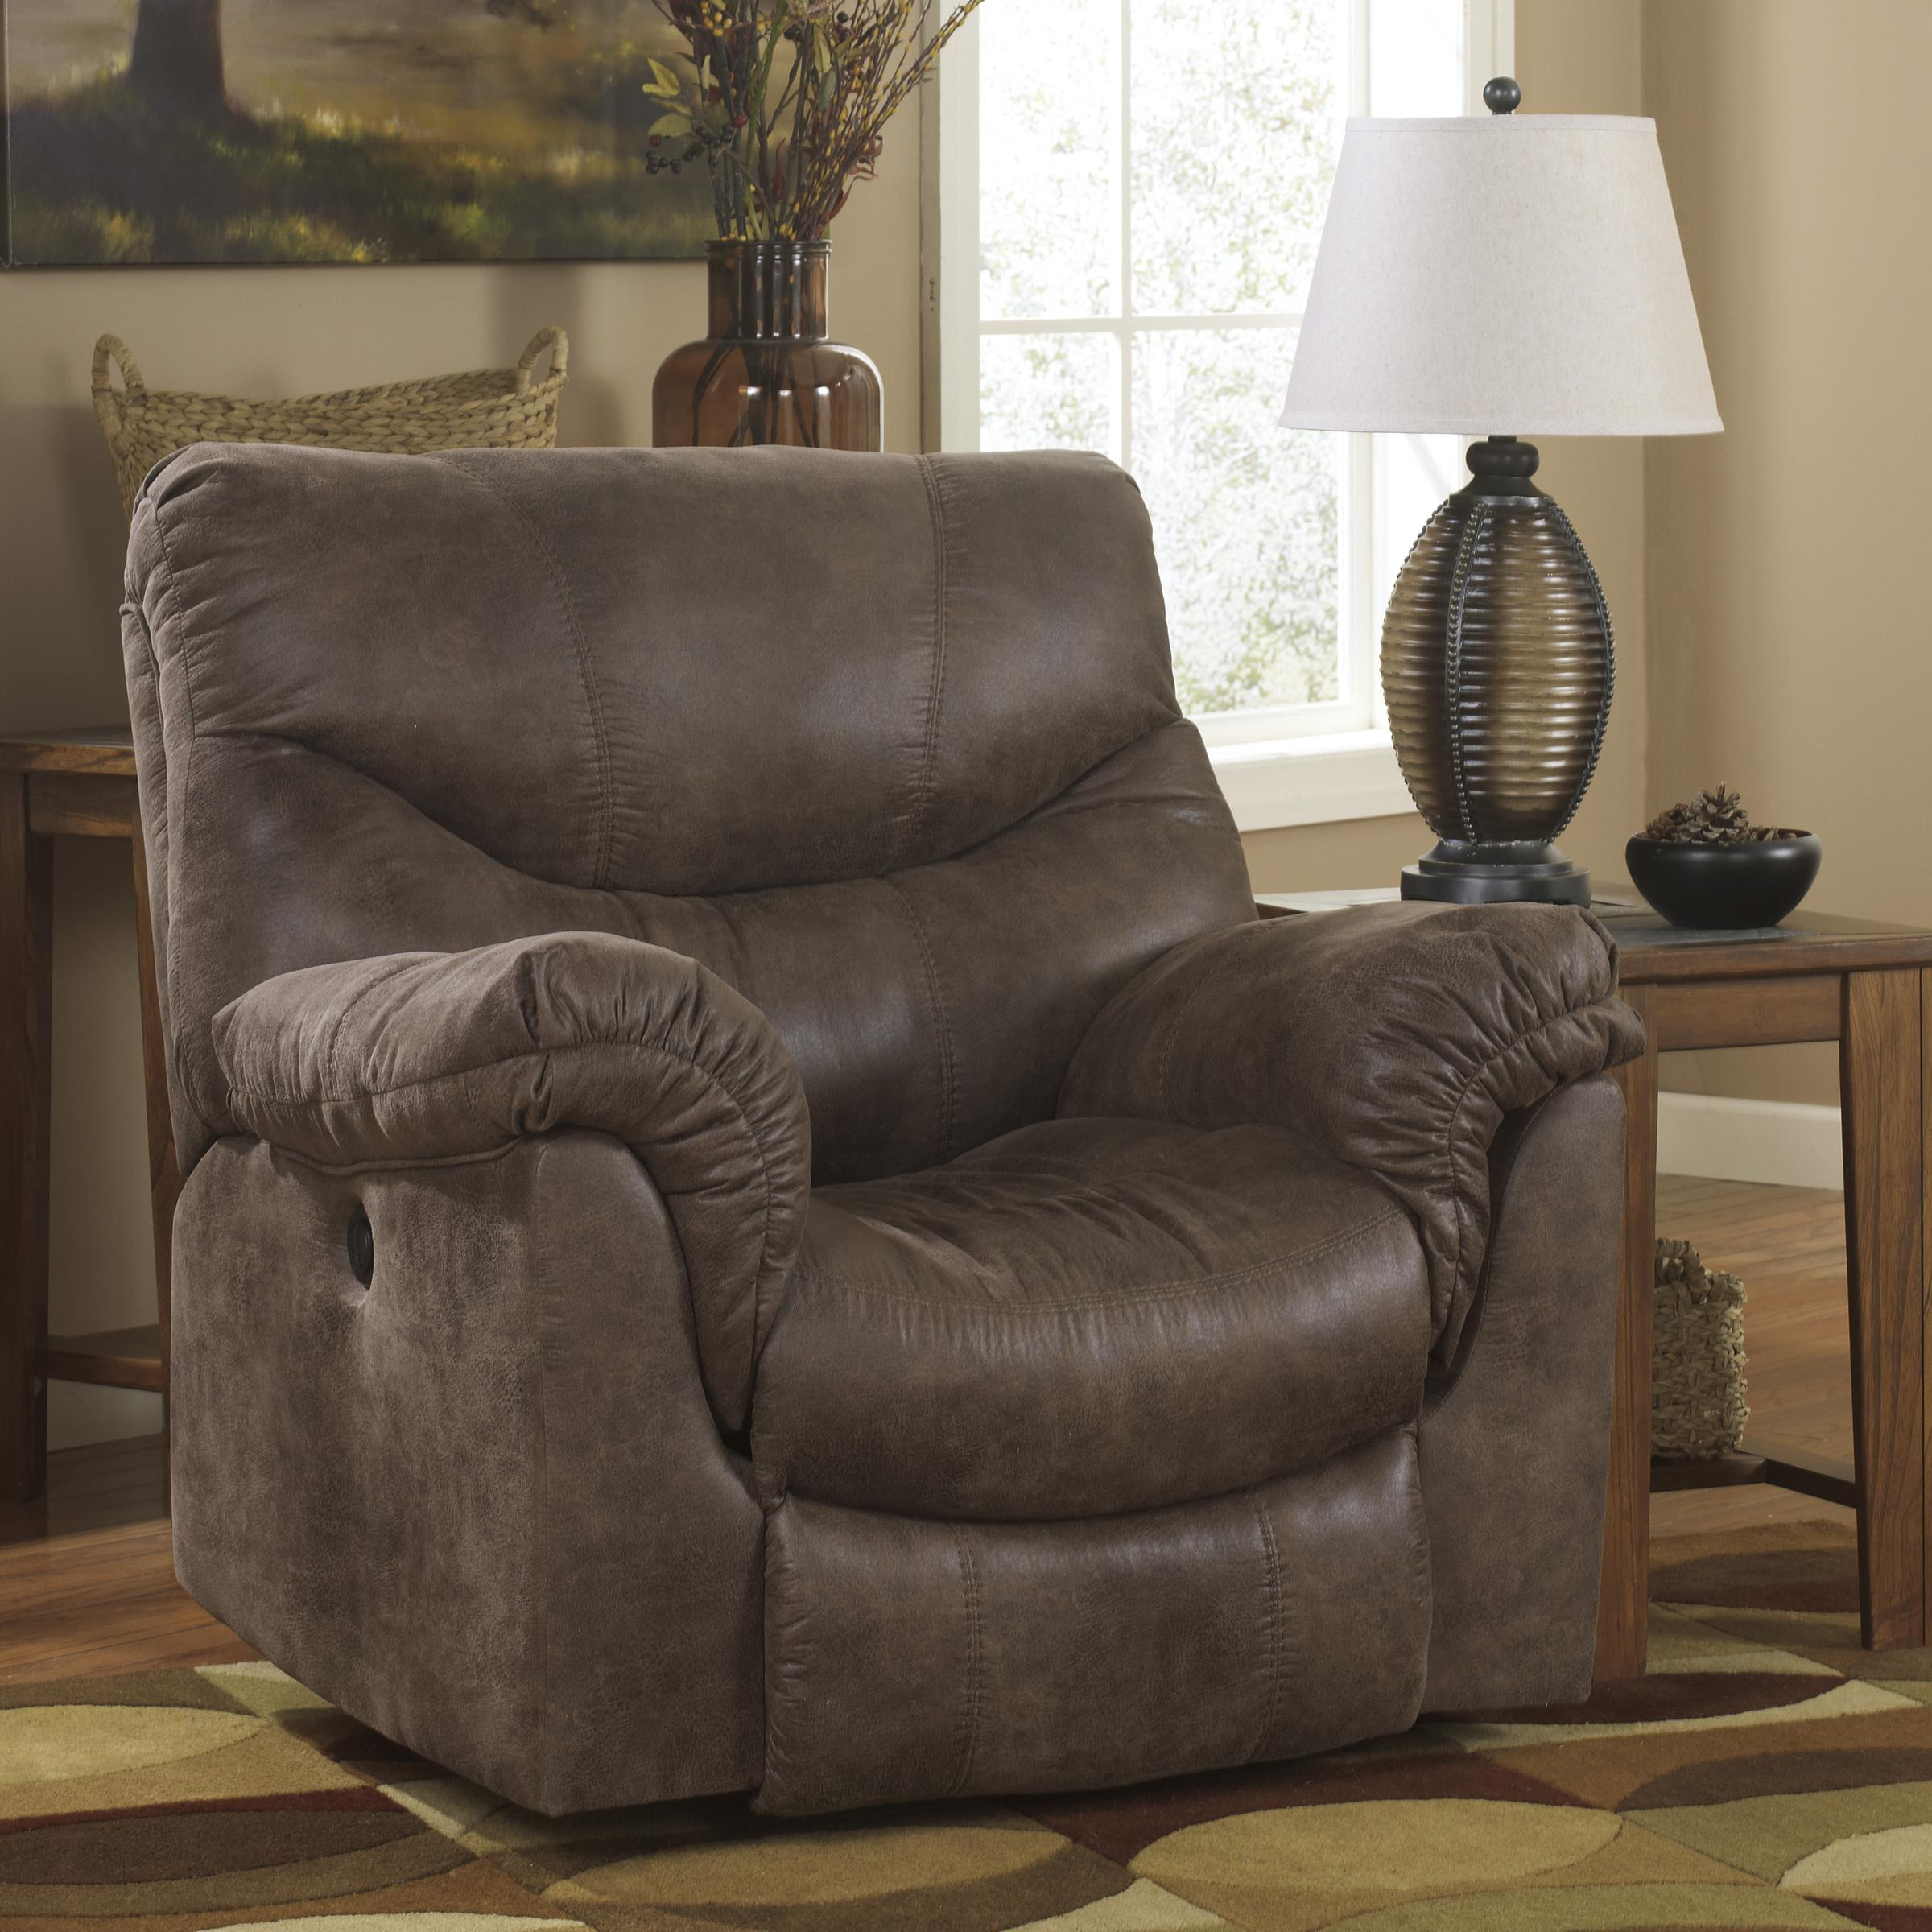 Signature Design by Ashley Alzena - Gunsmoke Power Rocker Recliner - Item Number: 7140098